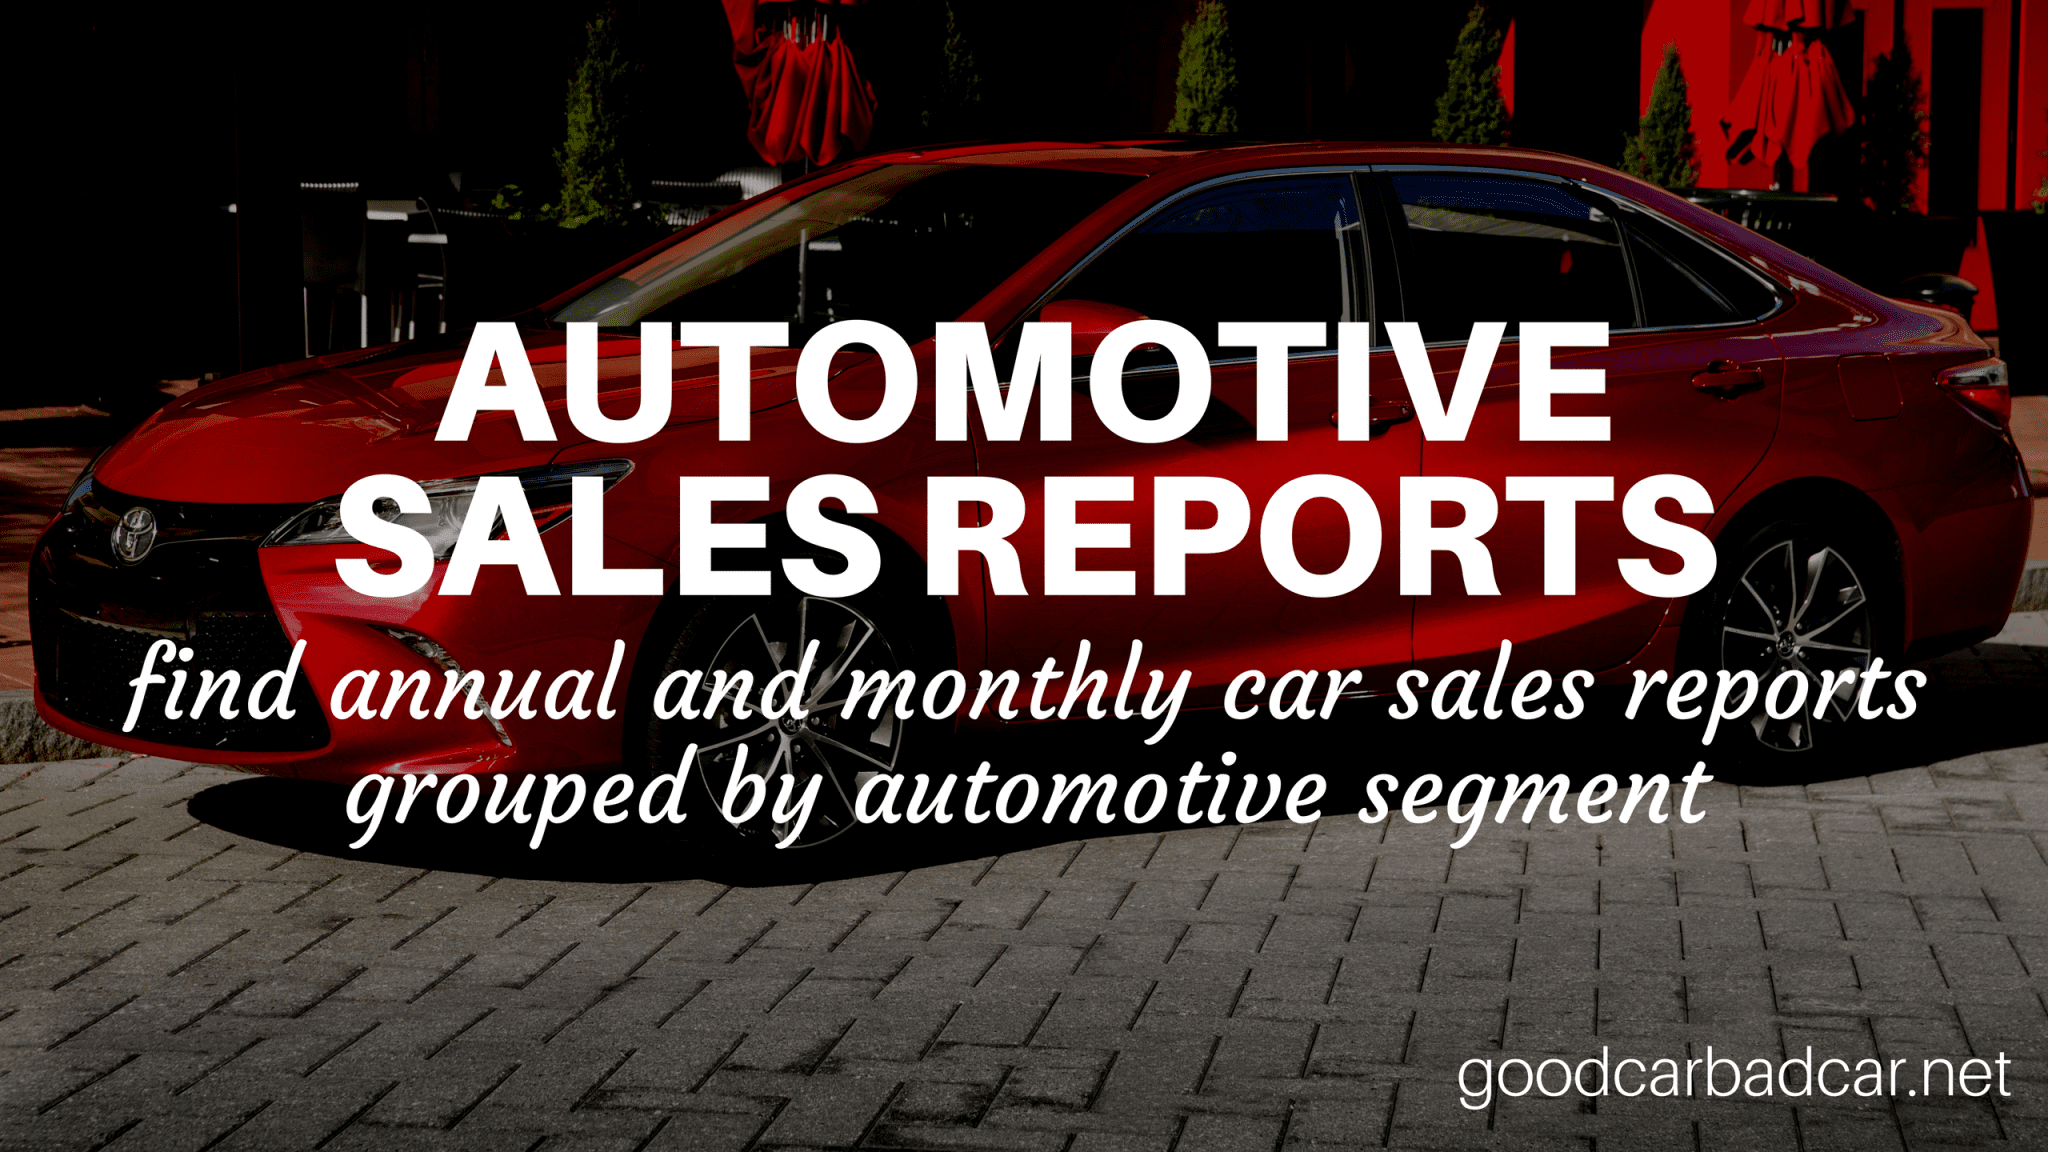 Automotive Reports by Sales Segment